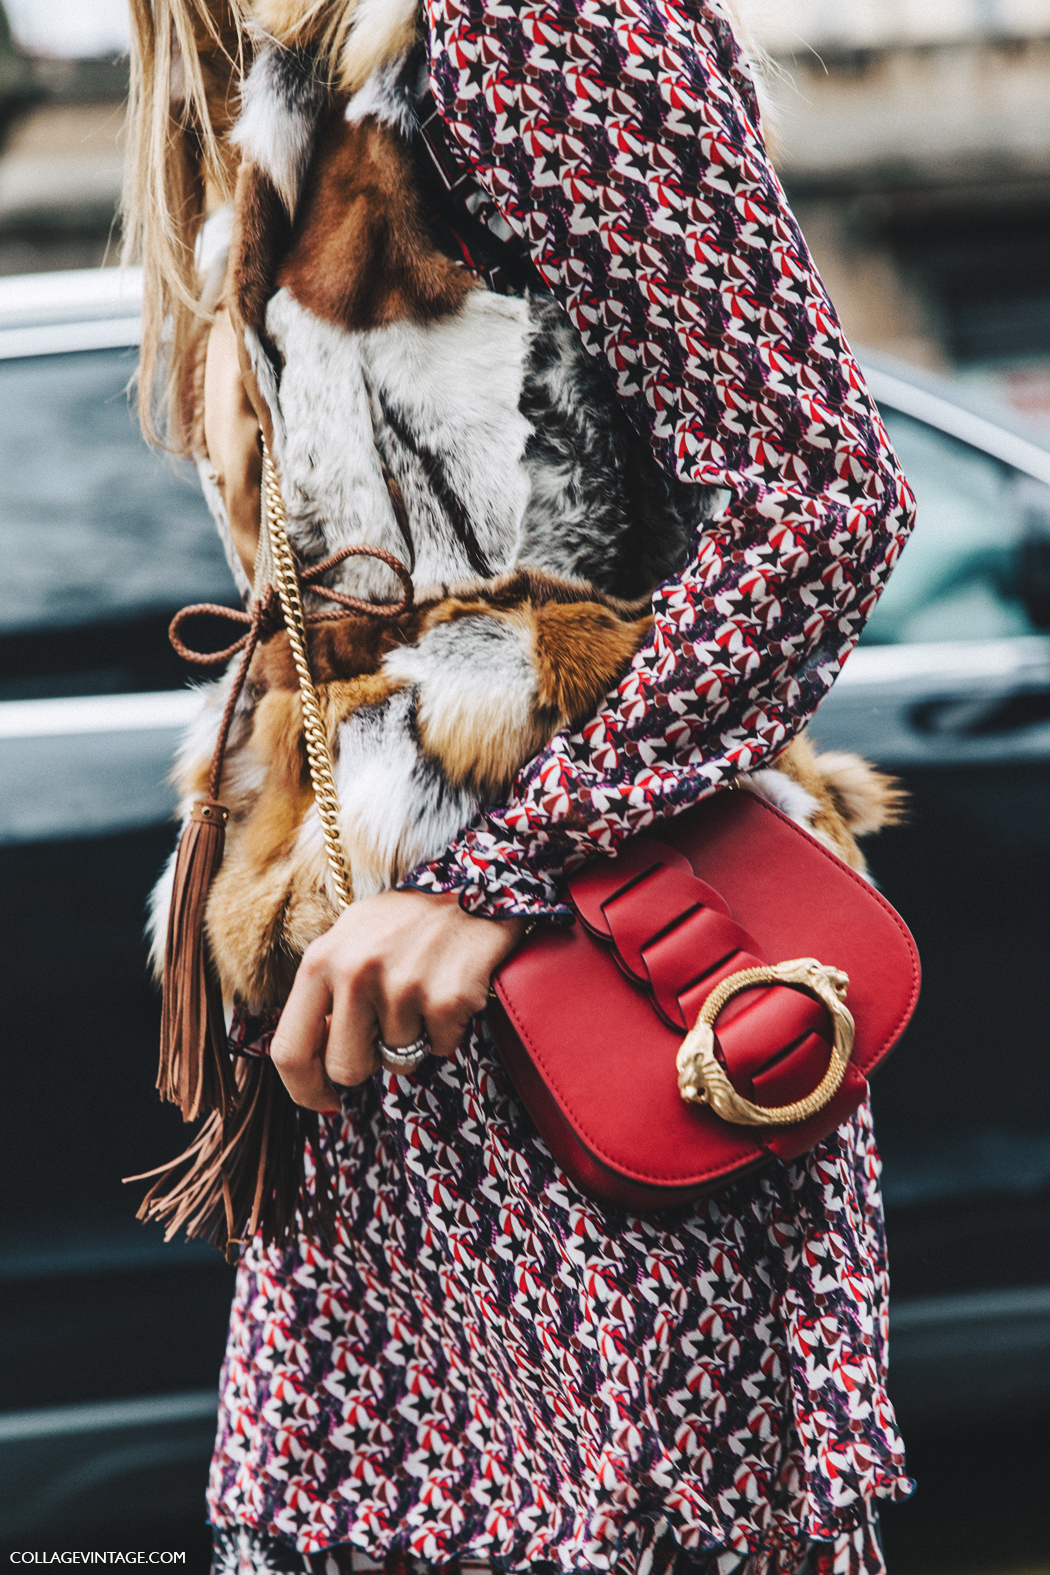 Milan_Fashion_Week_Fall_16-MFW-Street_Style-Collage_Vintage-erica_Pelossini-1